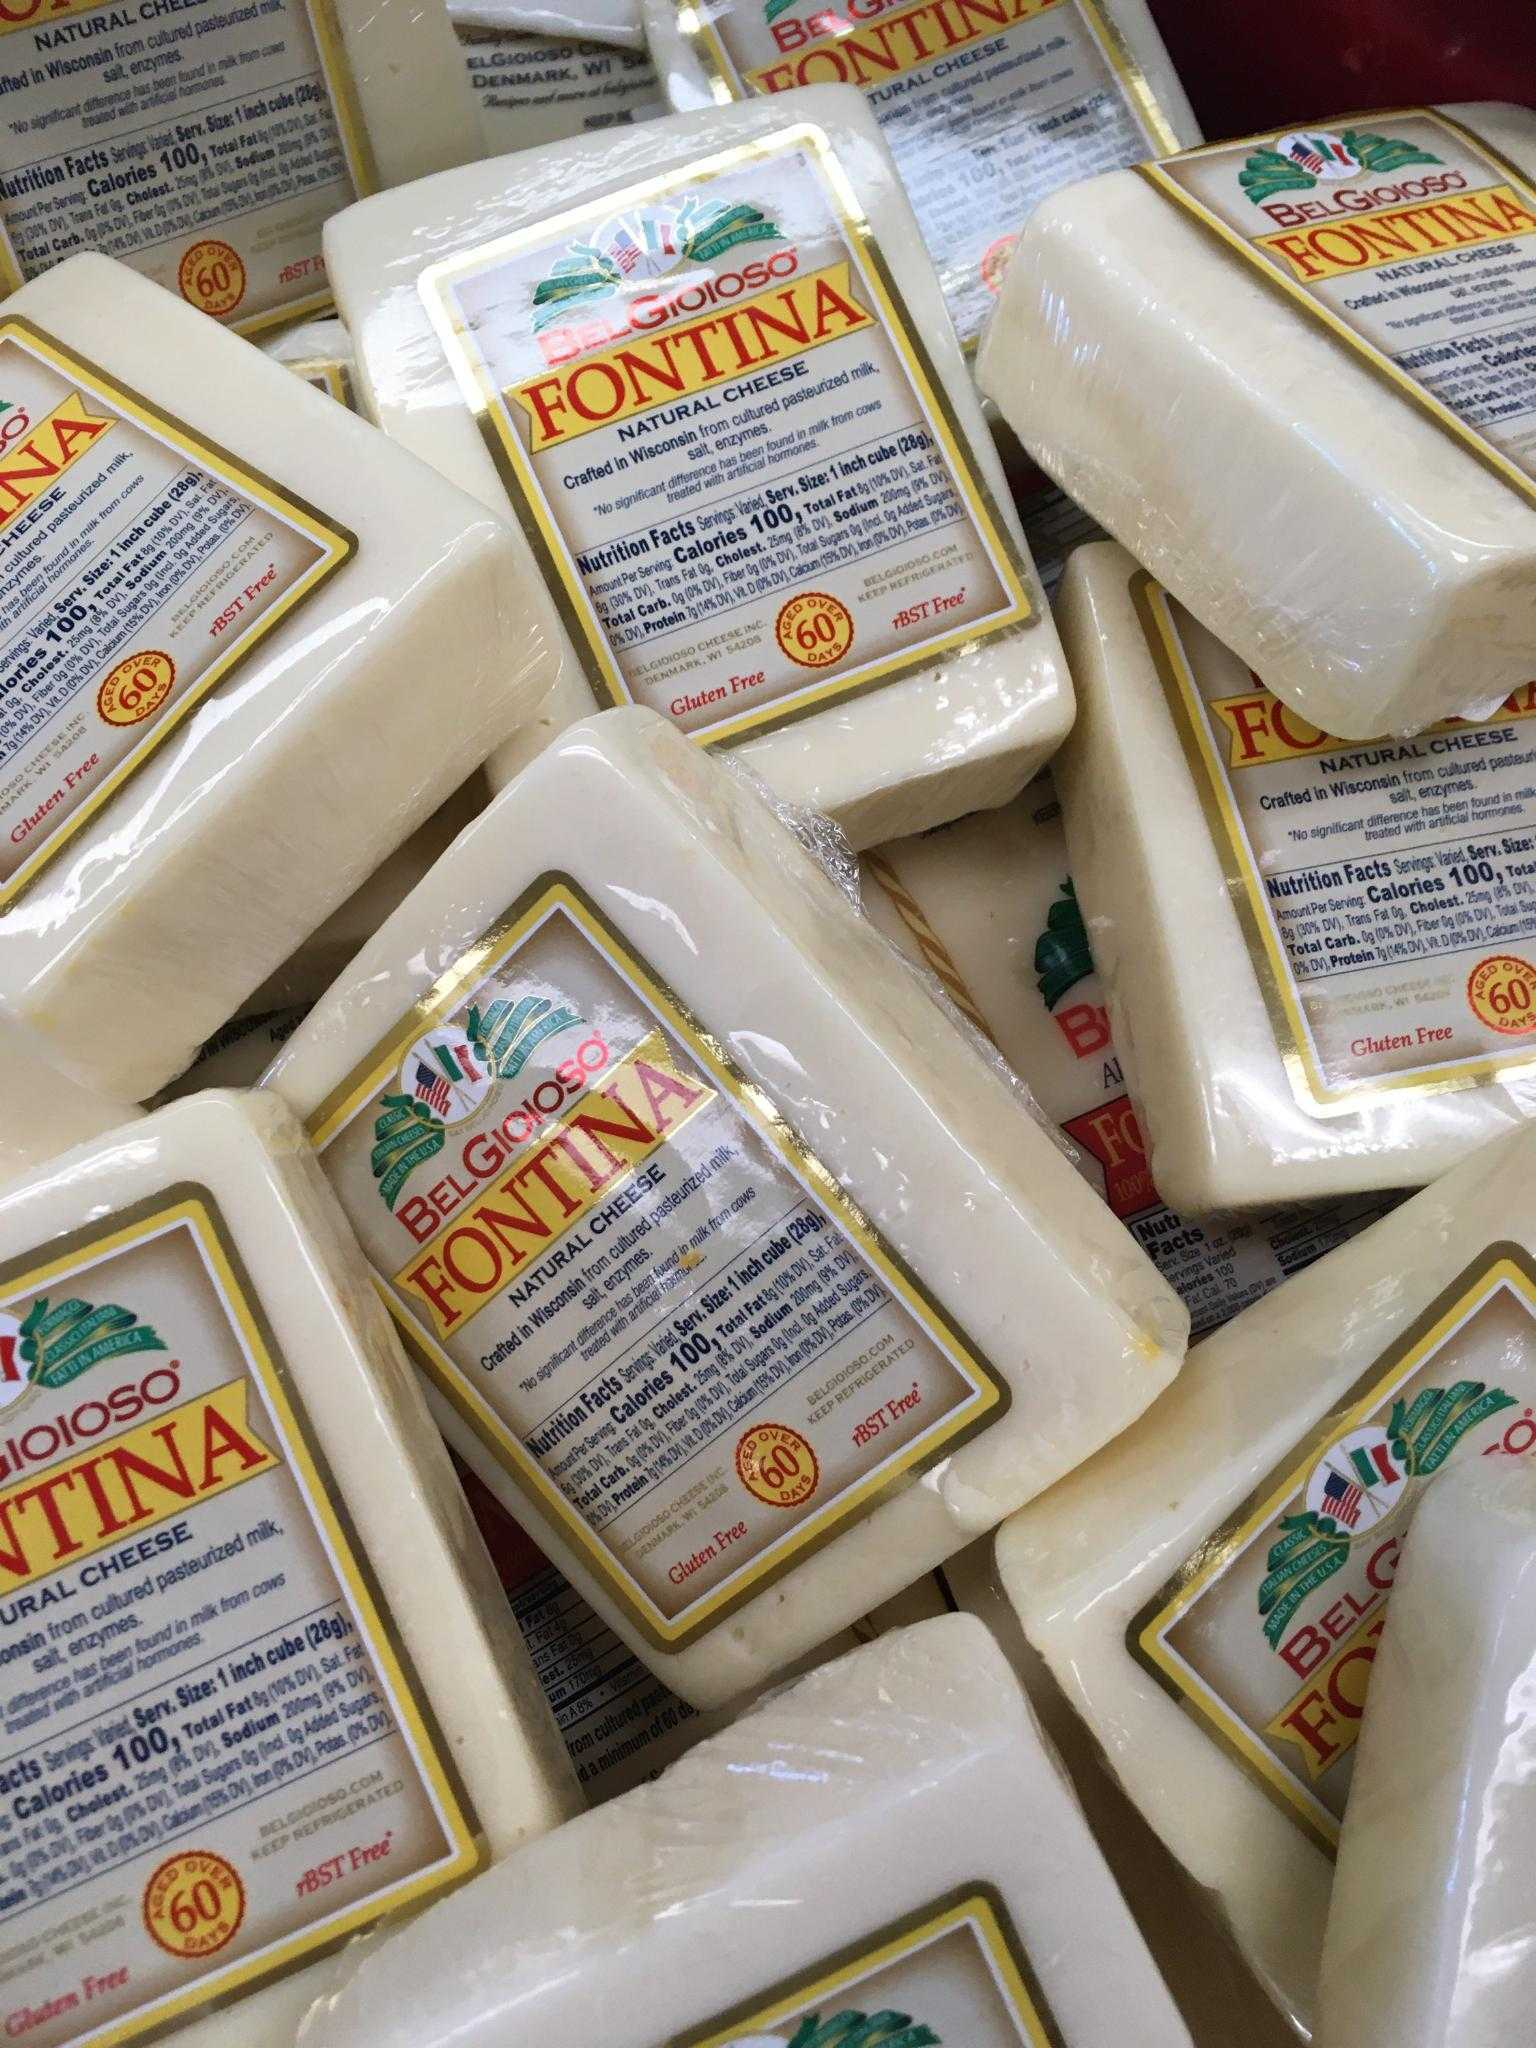 A pile of Belgioioso Fontina Cheese blocks.